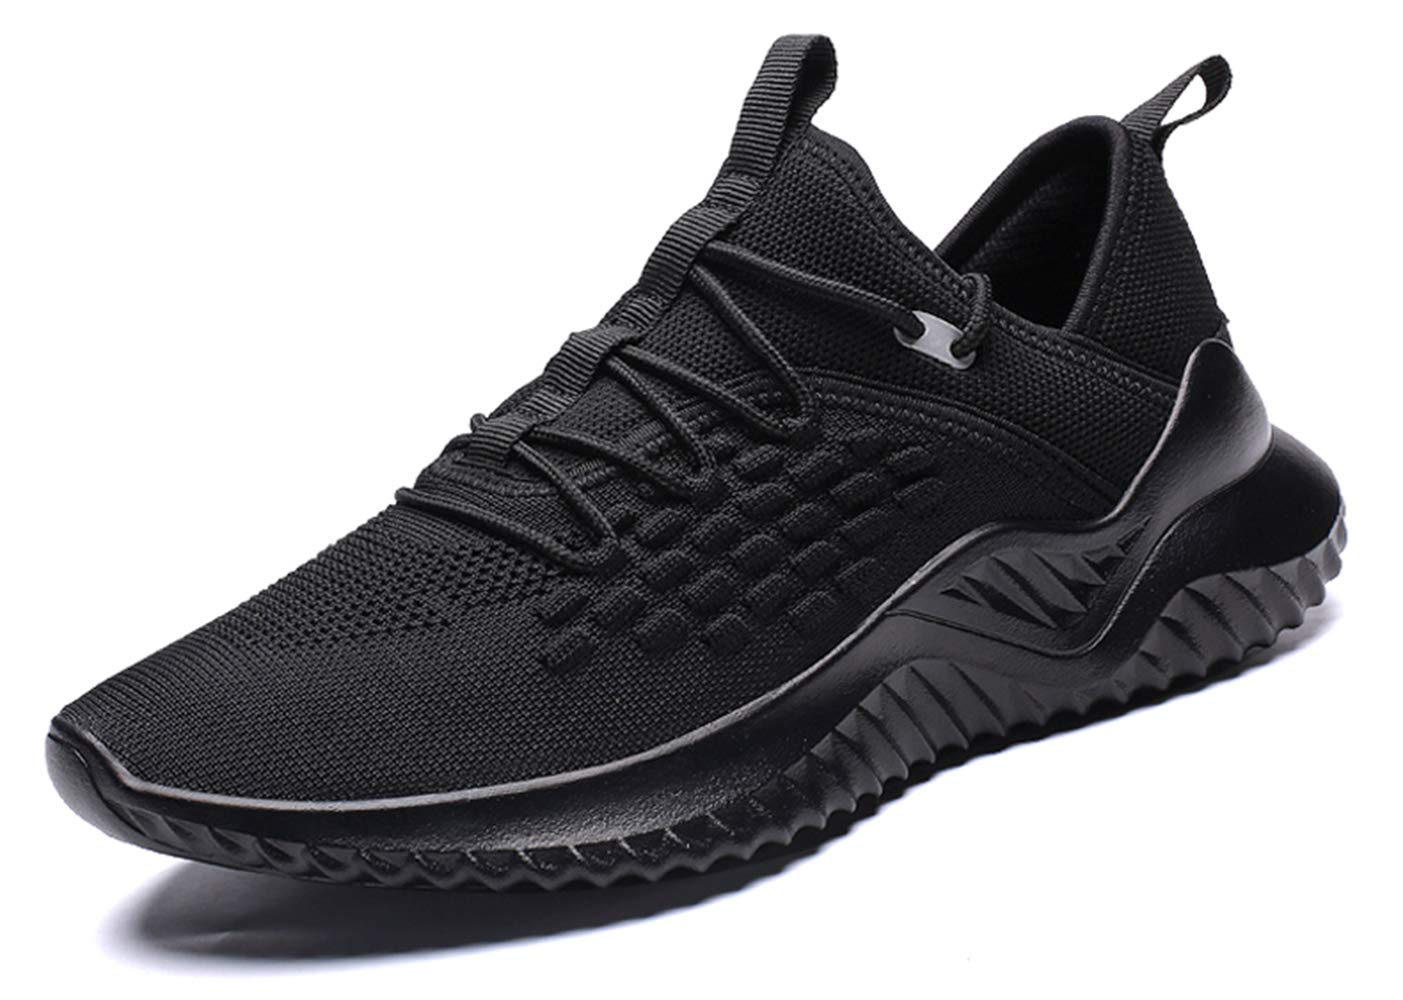 SKDOIUL Slip on Tennis Shoes for Men All Black Sneakers flyknti mesh Breathable Comfort Youth Boys Trail Running Shoes Gym Workout Jogging Size 6.5 (1907-Black-39)